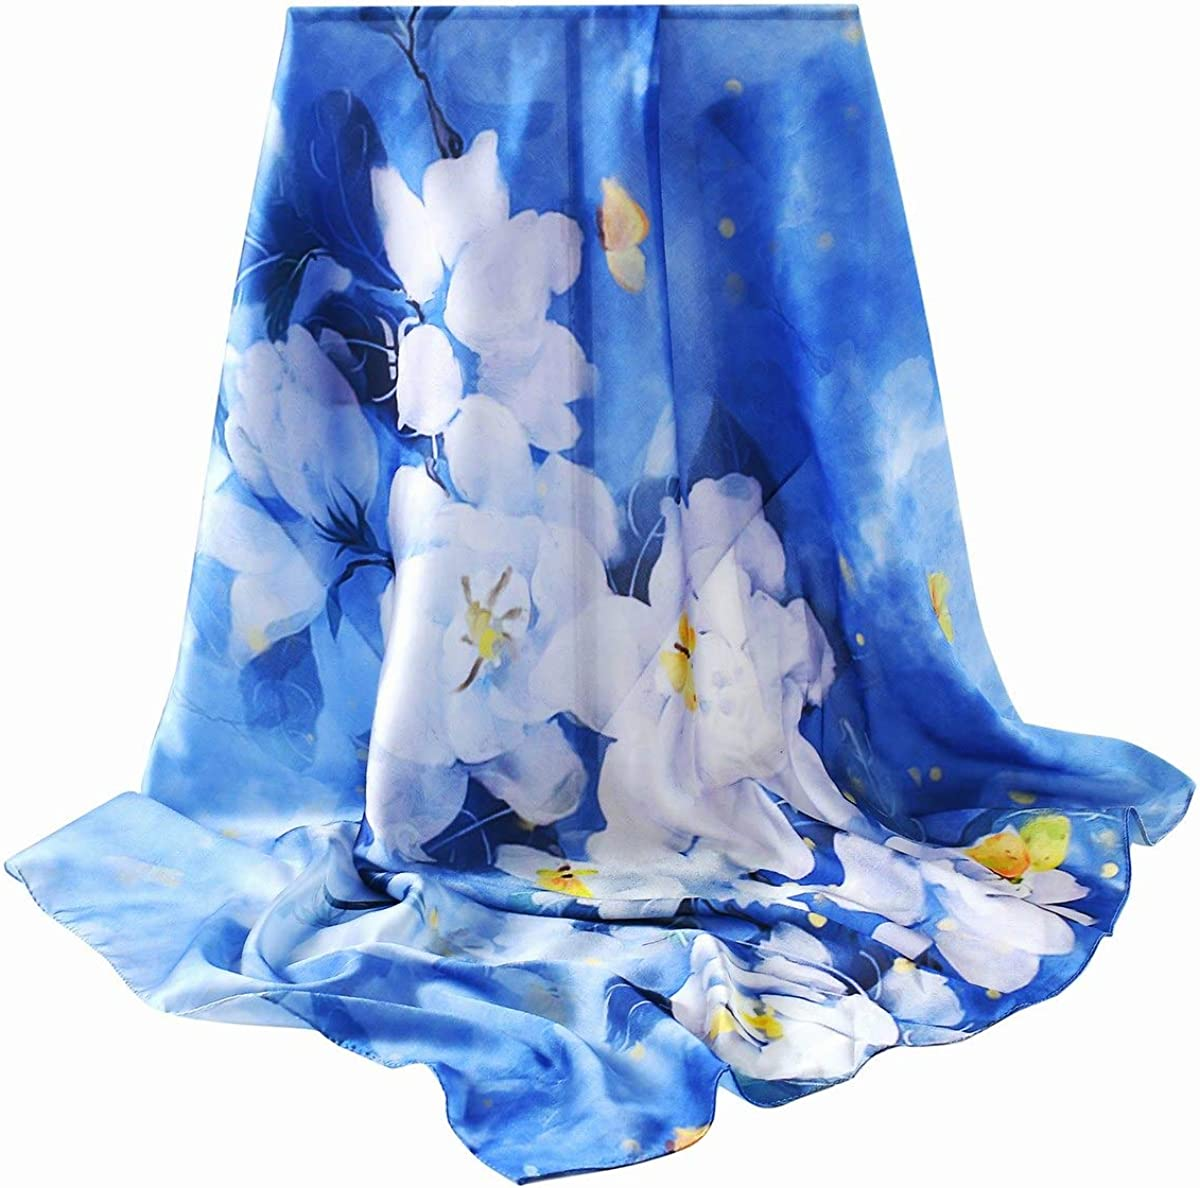 """35"""" Square or Solid Oblong Large 100% Mulberry Silk Hair Scarf Wrap With Gift Box Package"""